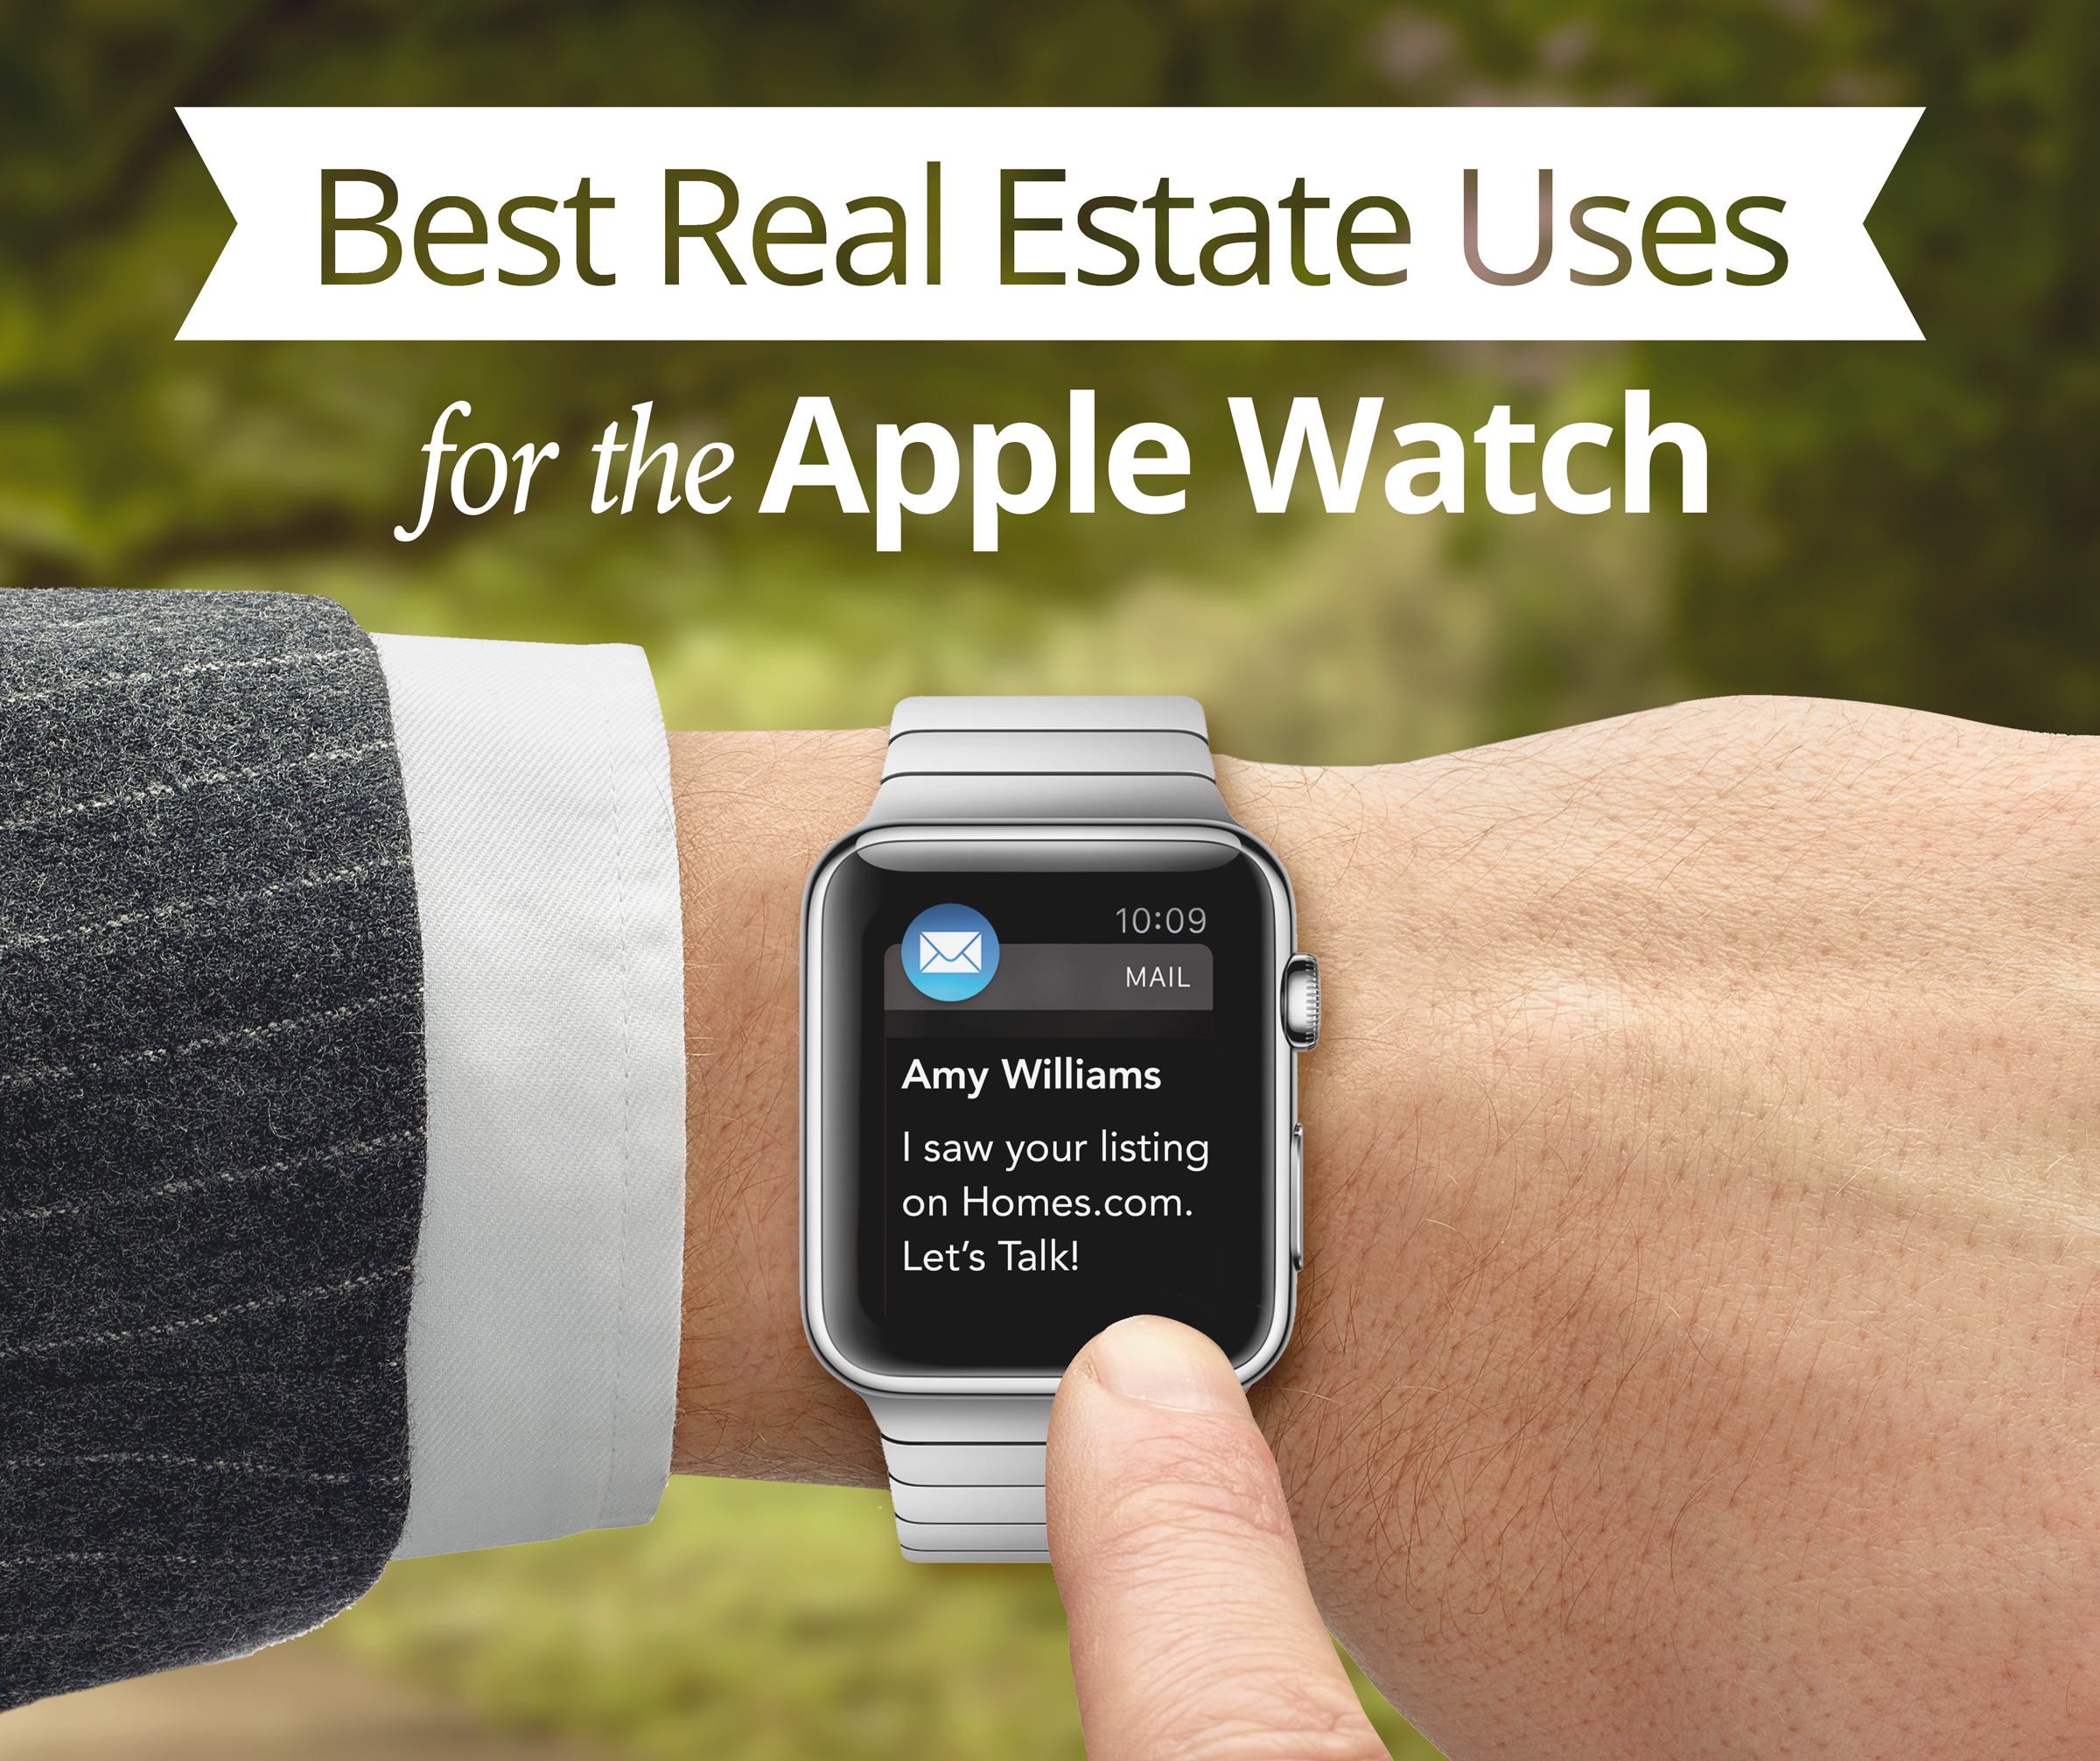 Best Real Estate Uses for the Apple Watch